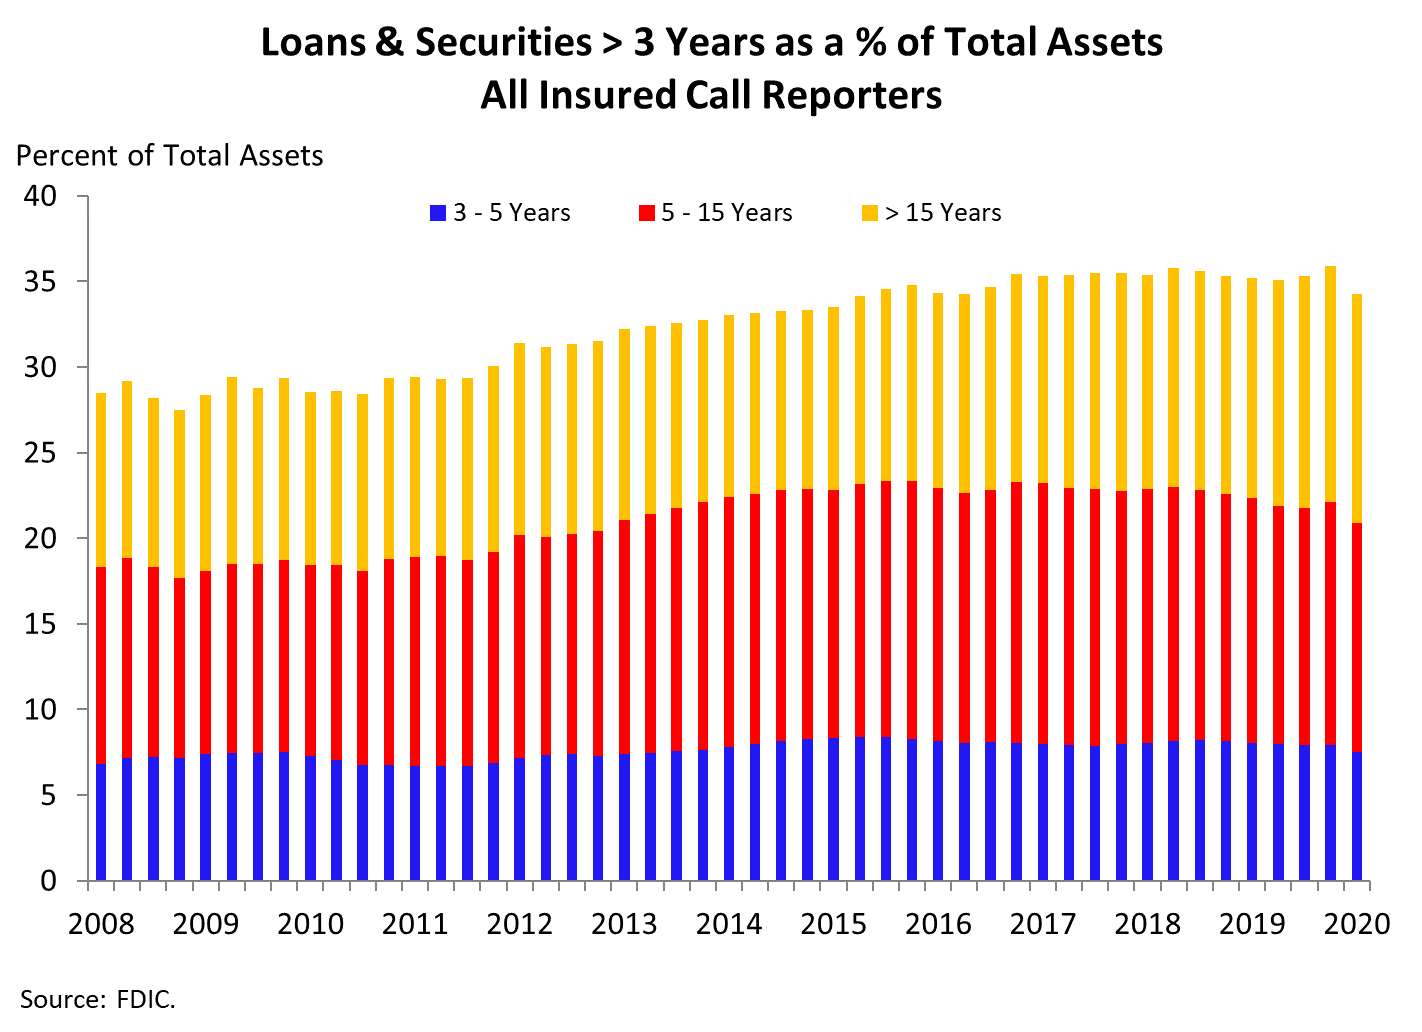 Chart 4: Loans and Securities greater than 3 Years as a percentage of Total Assets - All Insured Call Reporters